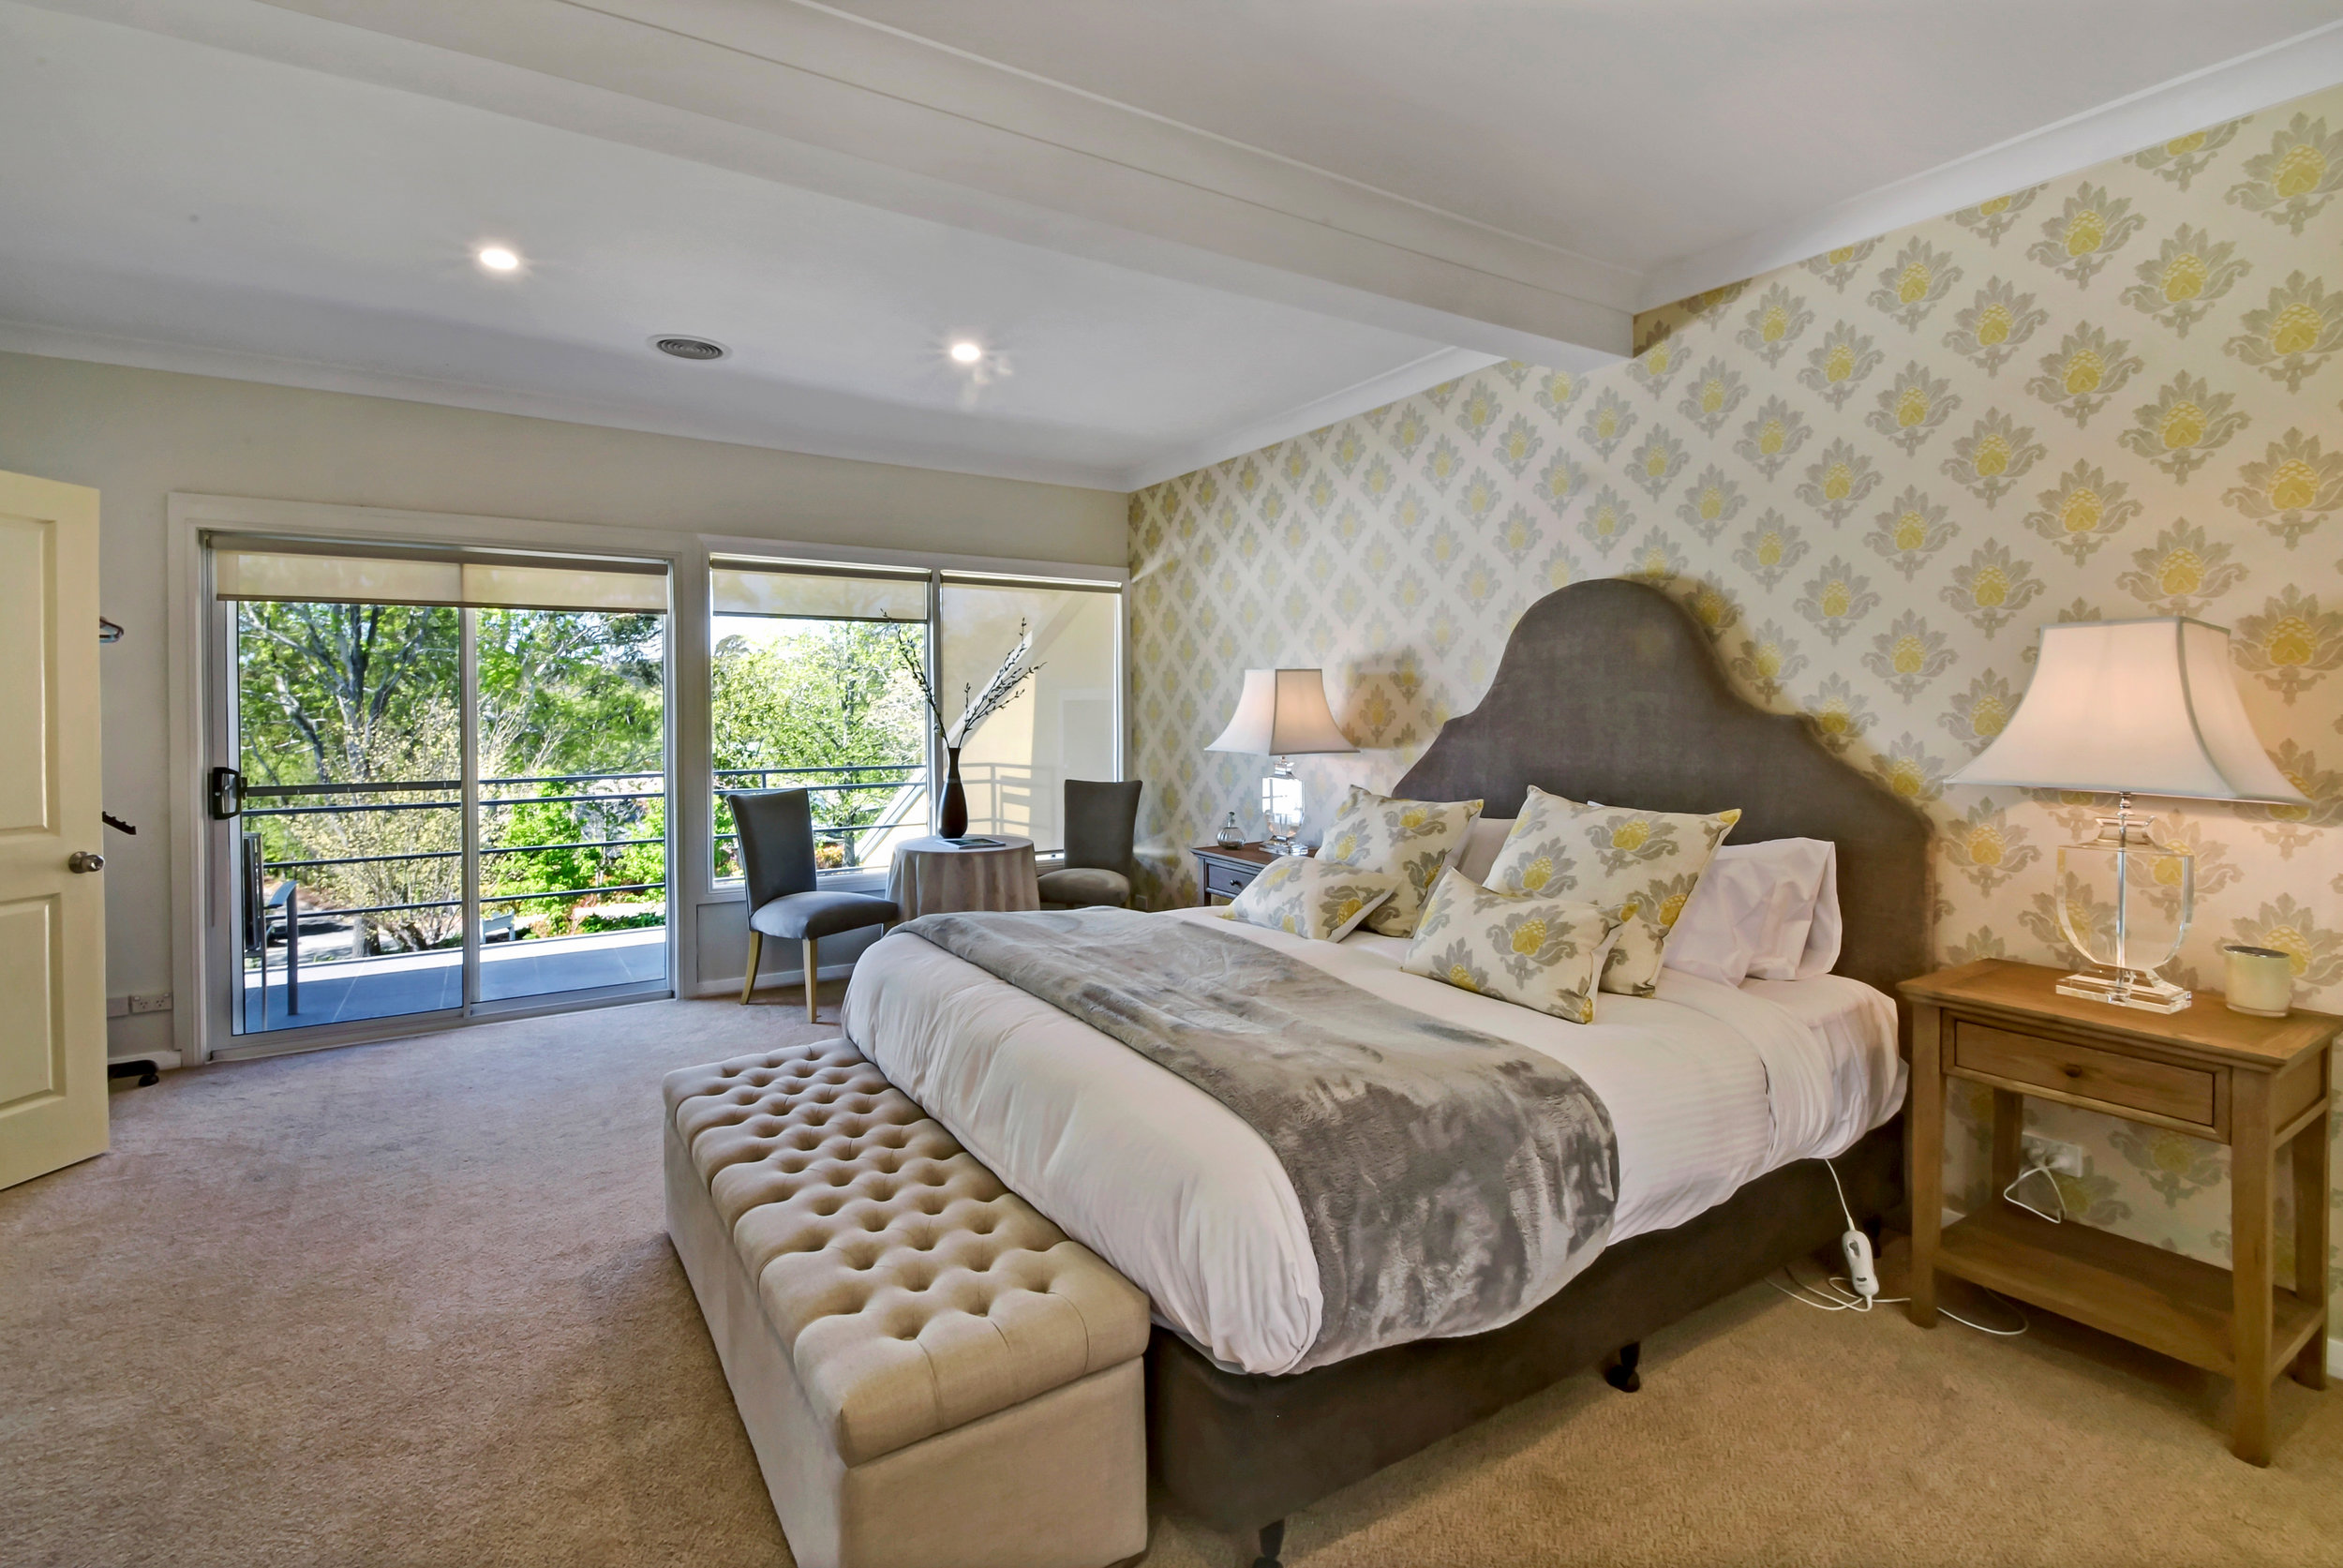 1 king bed | max 2 people (adults only)